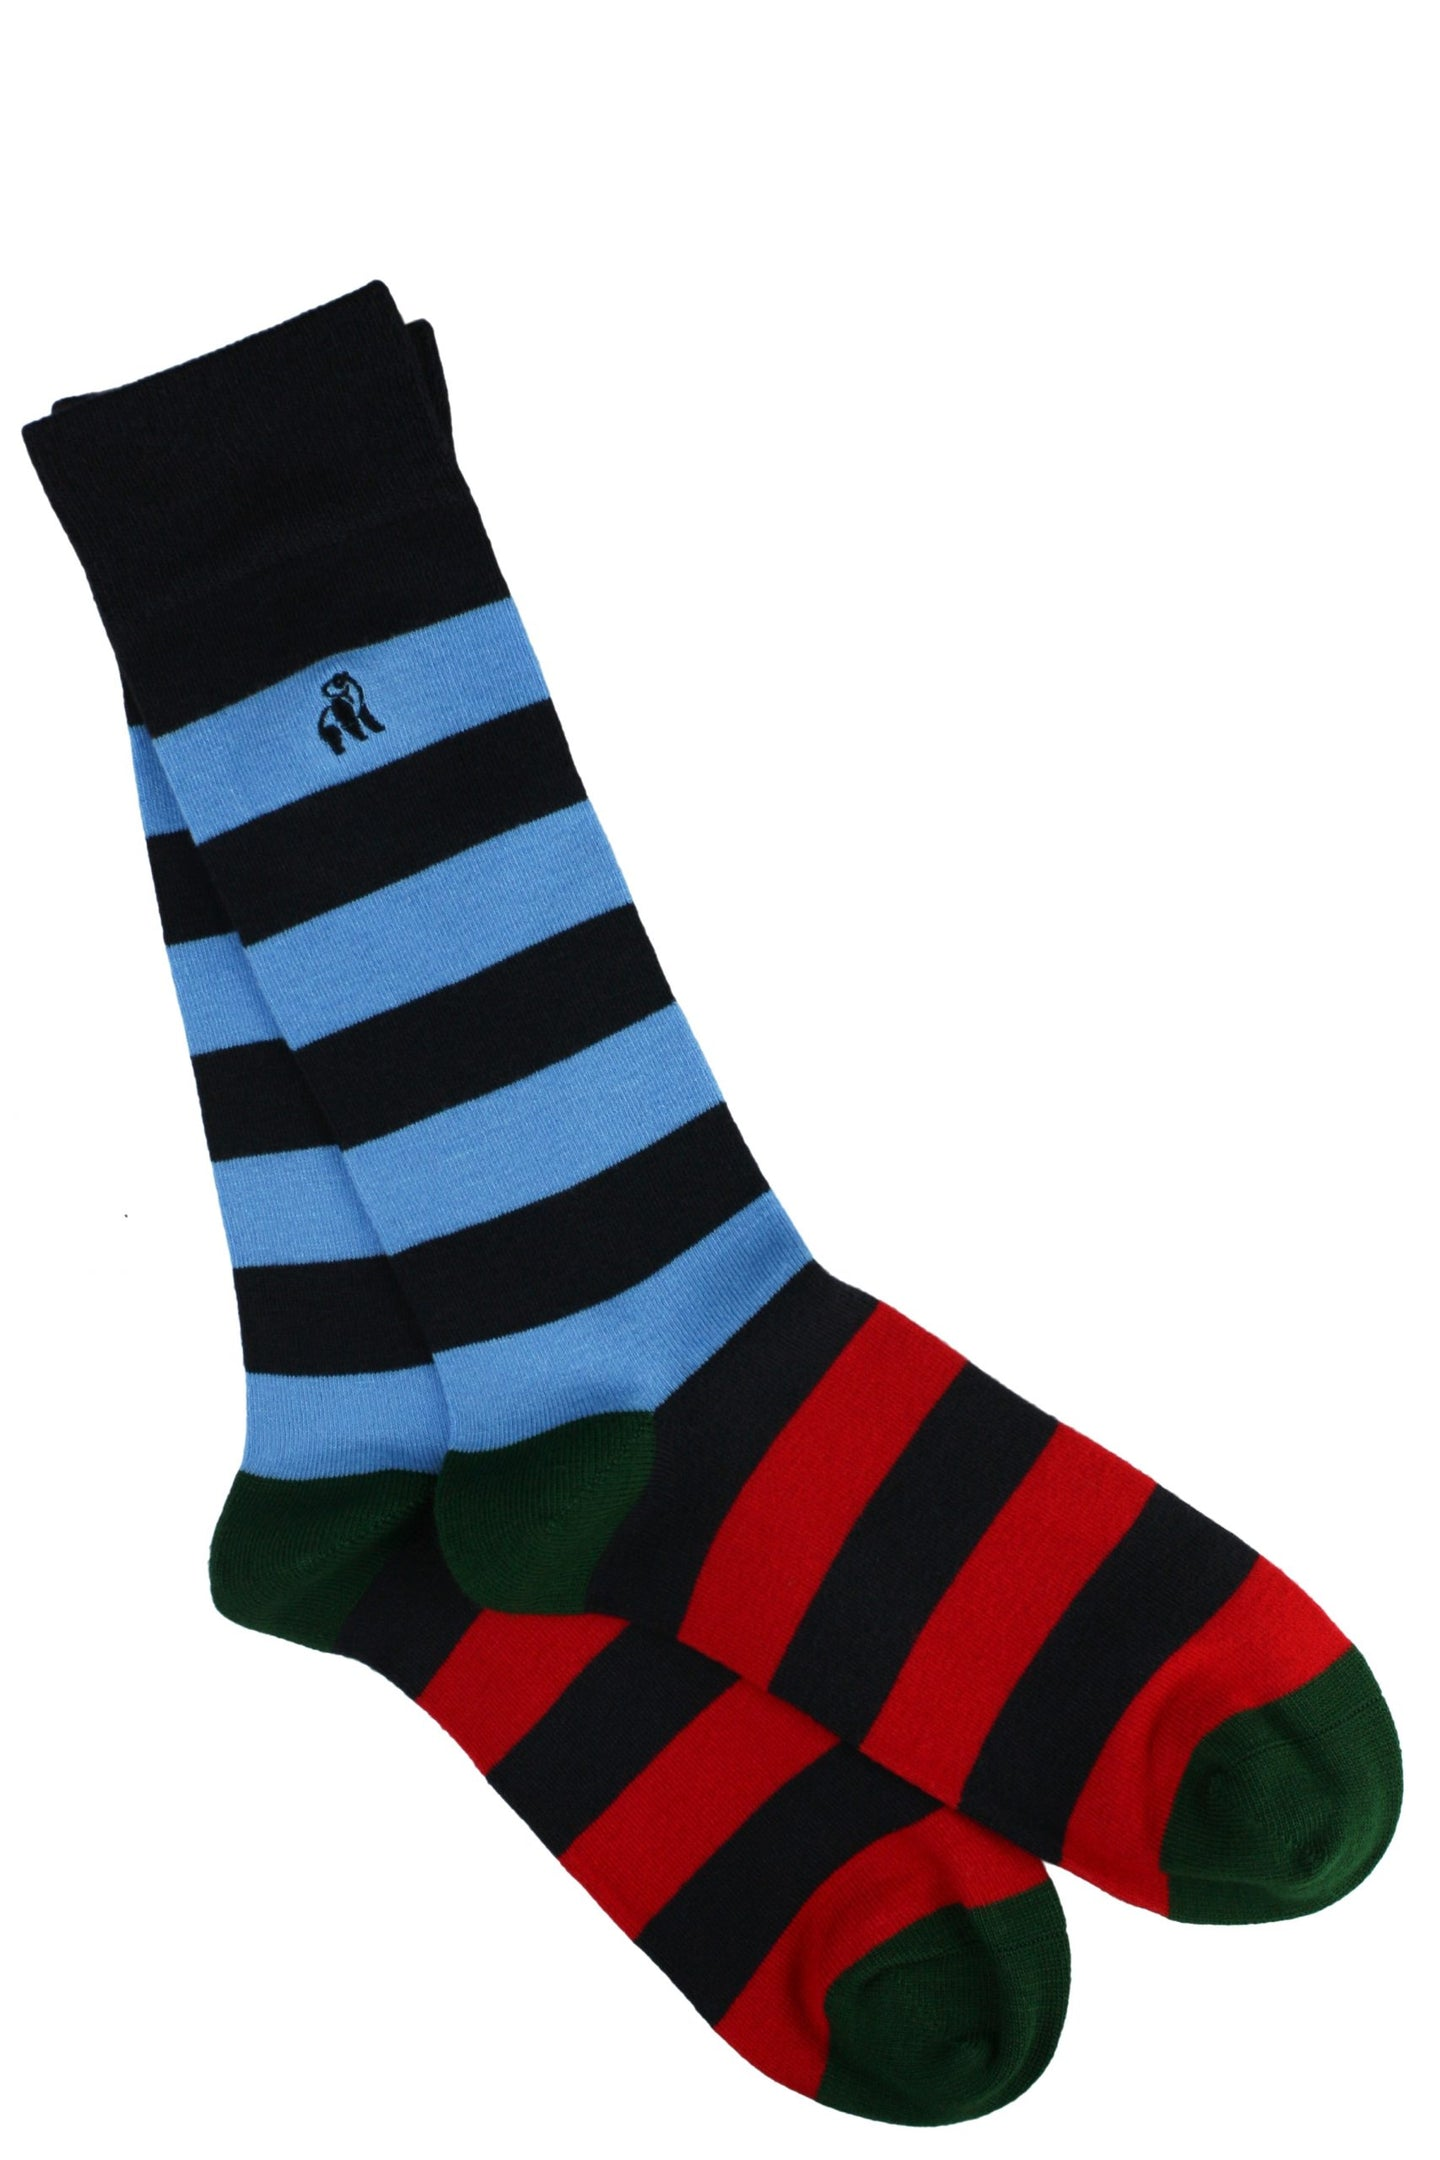 Blue, Red and Green Striped Bamboo Socks